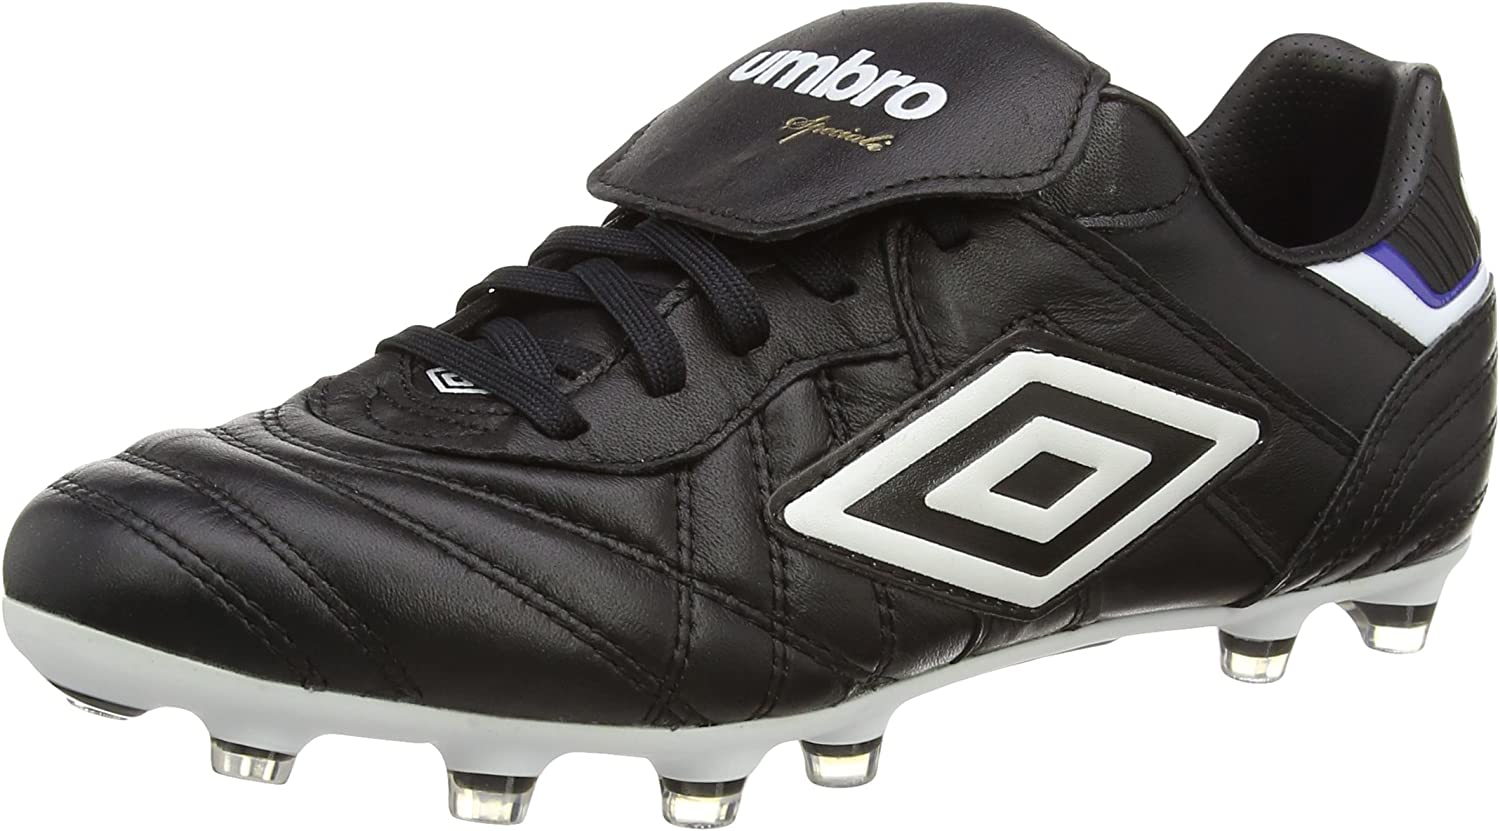 Umbro Speciali Eternal Pro HG Mens Leather Soccer Boots   Cleats